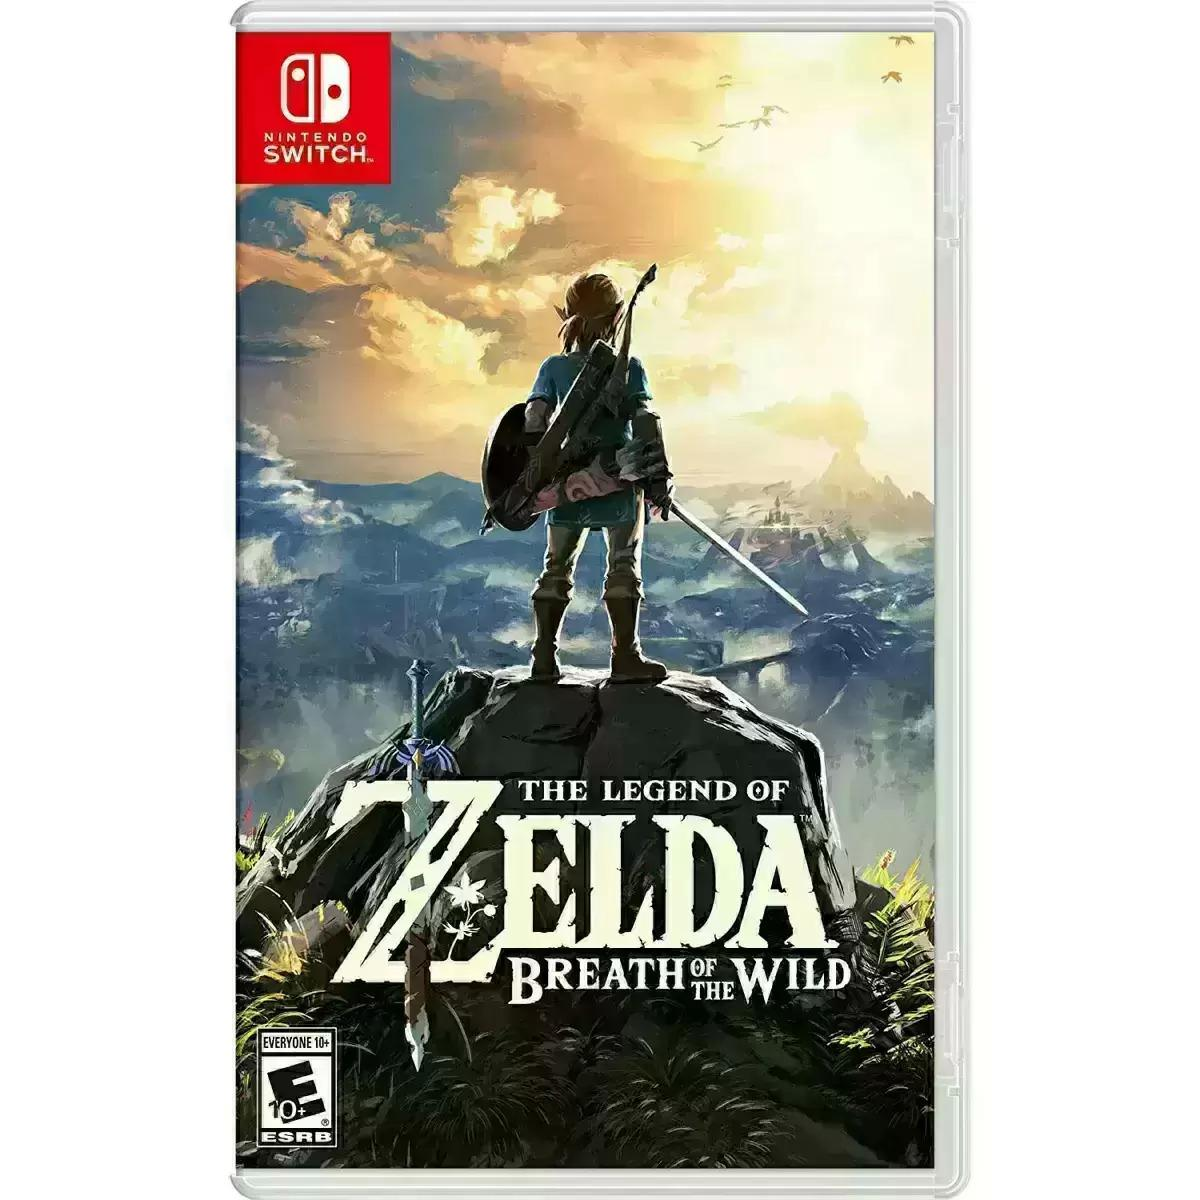 The Legend of Zelda Breath of the Wild Switch for $39.99 Shipped